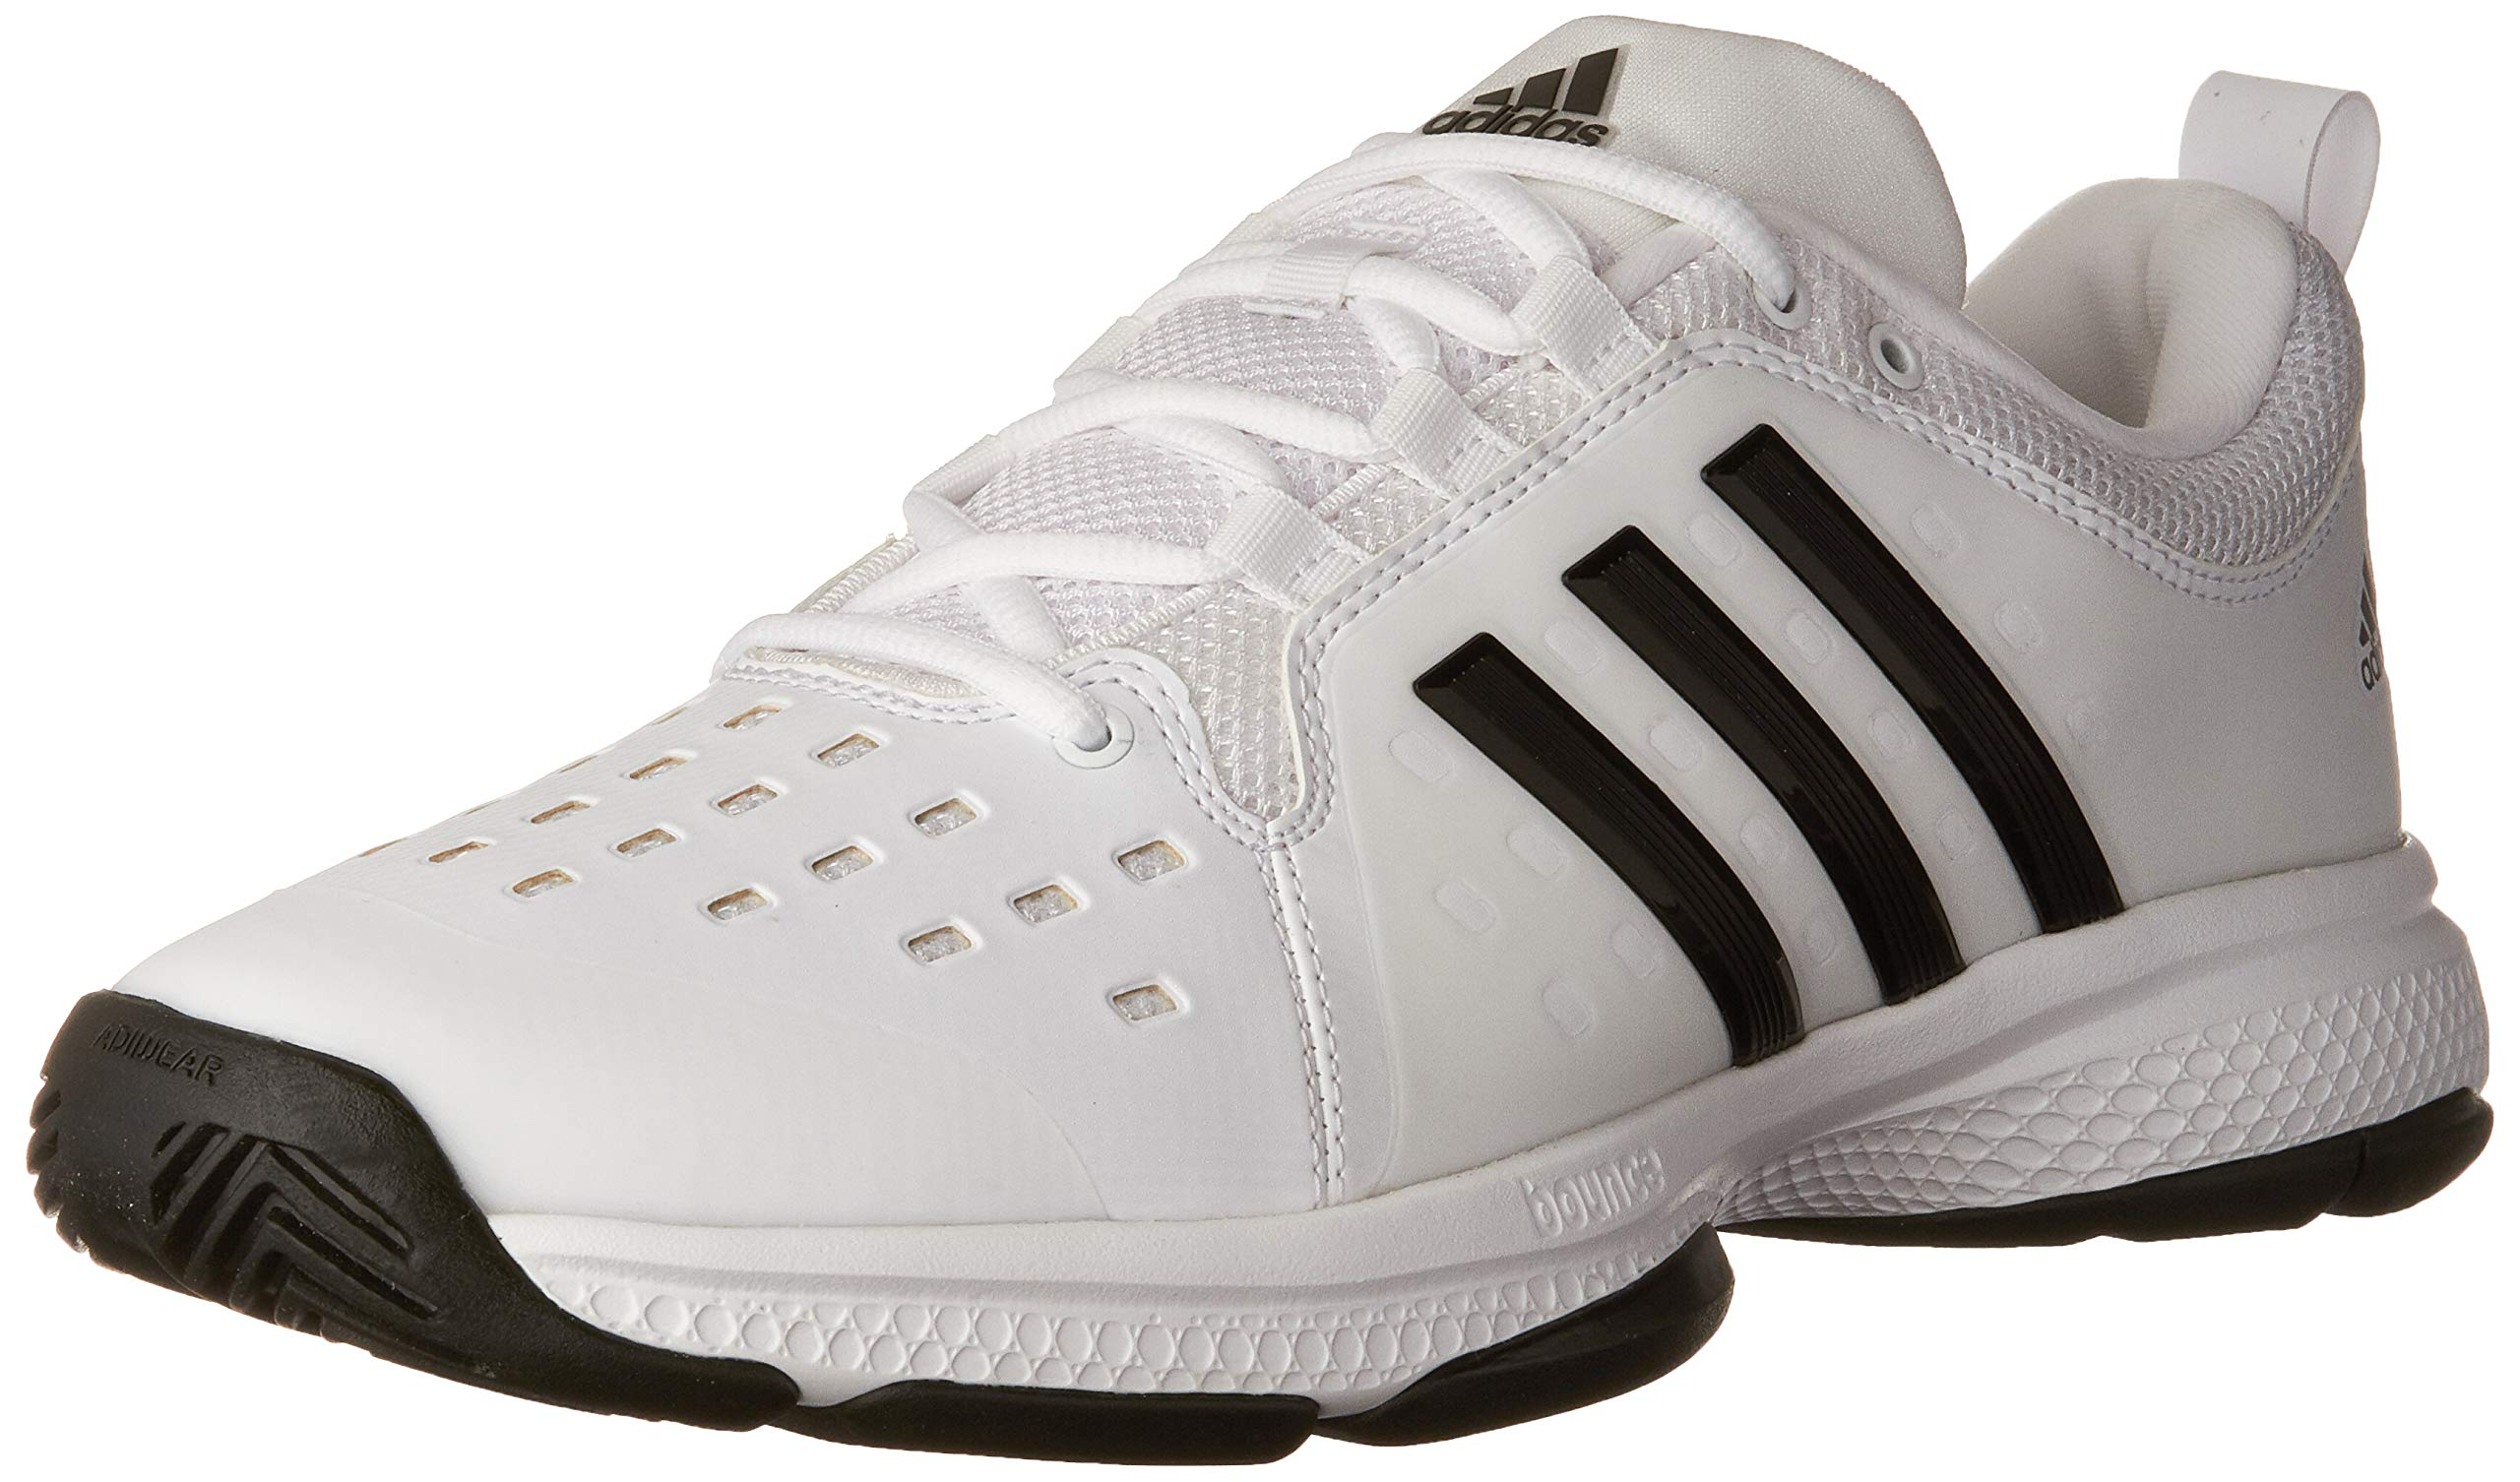 adidas Men's Barricade Classic Bounce Tennis Shoes, White/Black/White, (9 M US) by adidas